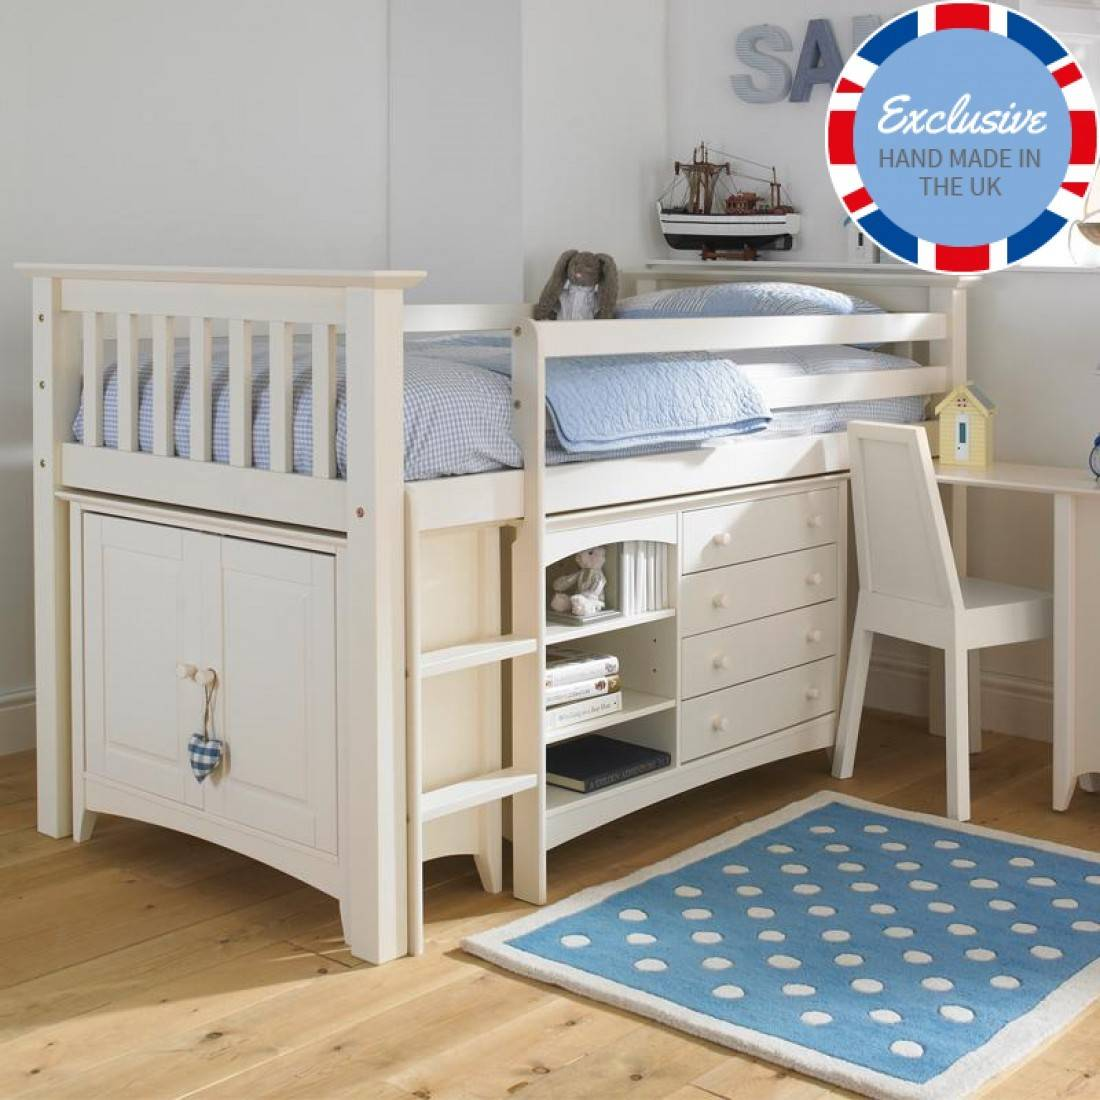 Luxury Kids Cabin Bed Childrens Bedroom Furniture